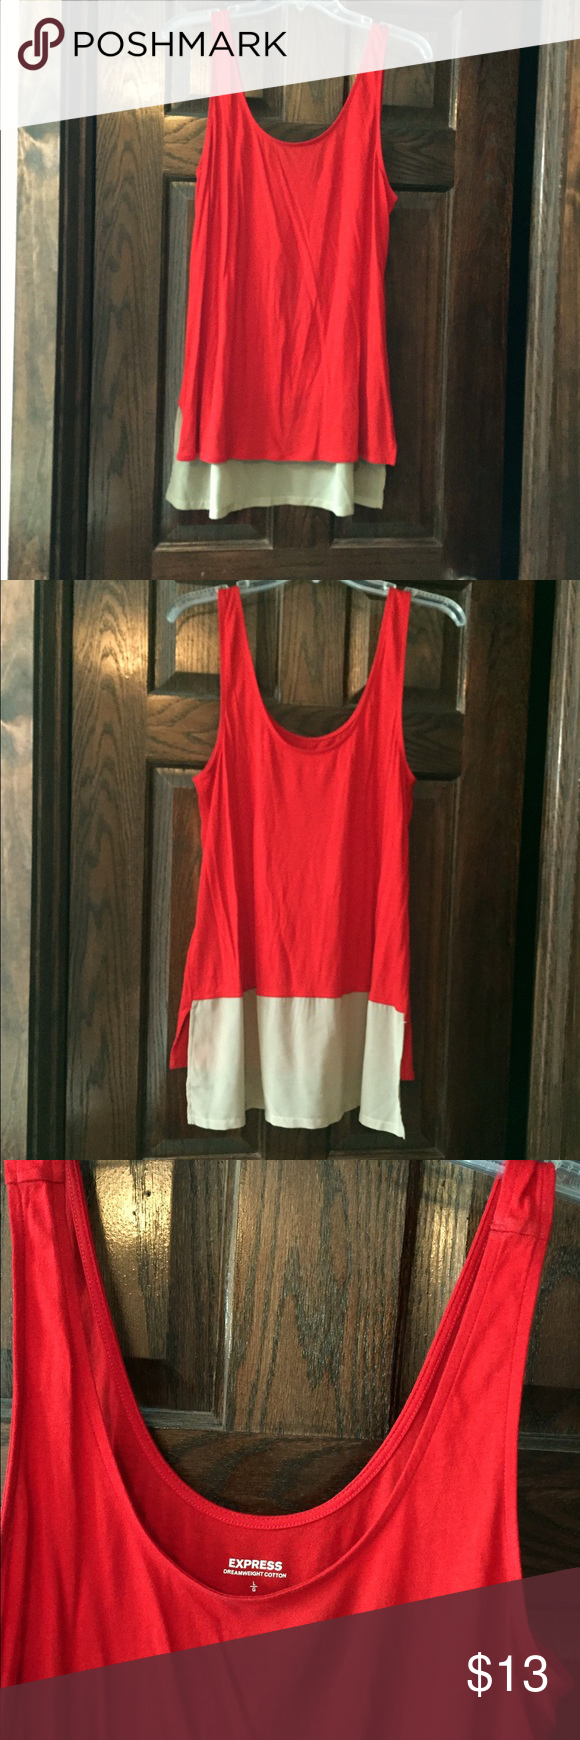 Express Dreamweight Cotton Chiffon Tank Top Lightweight red and tan color block tank from Express. Perfect light and airy tank for summer. Somewhat of a hi-lo top, as the tan chiffon material in the back is slightly longer than the front. Worn once. Great condition. Express Tops Tank Tops